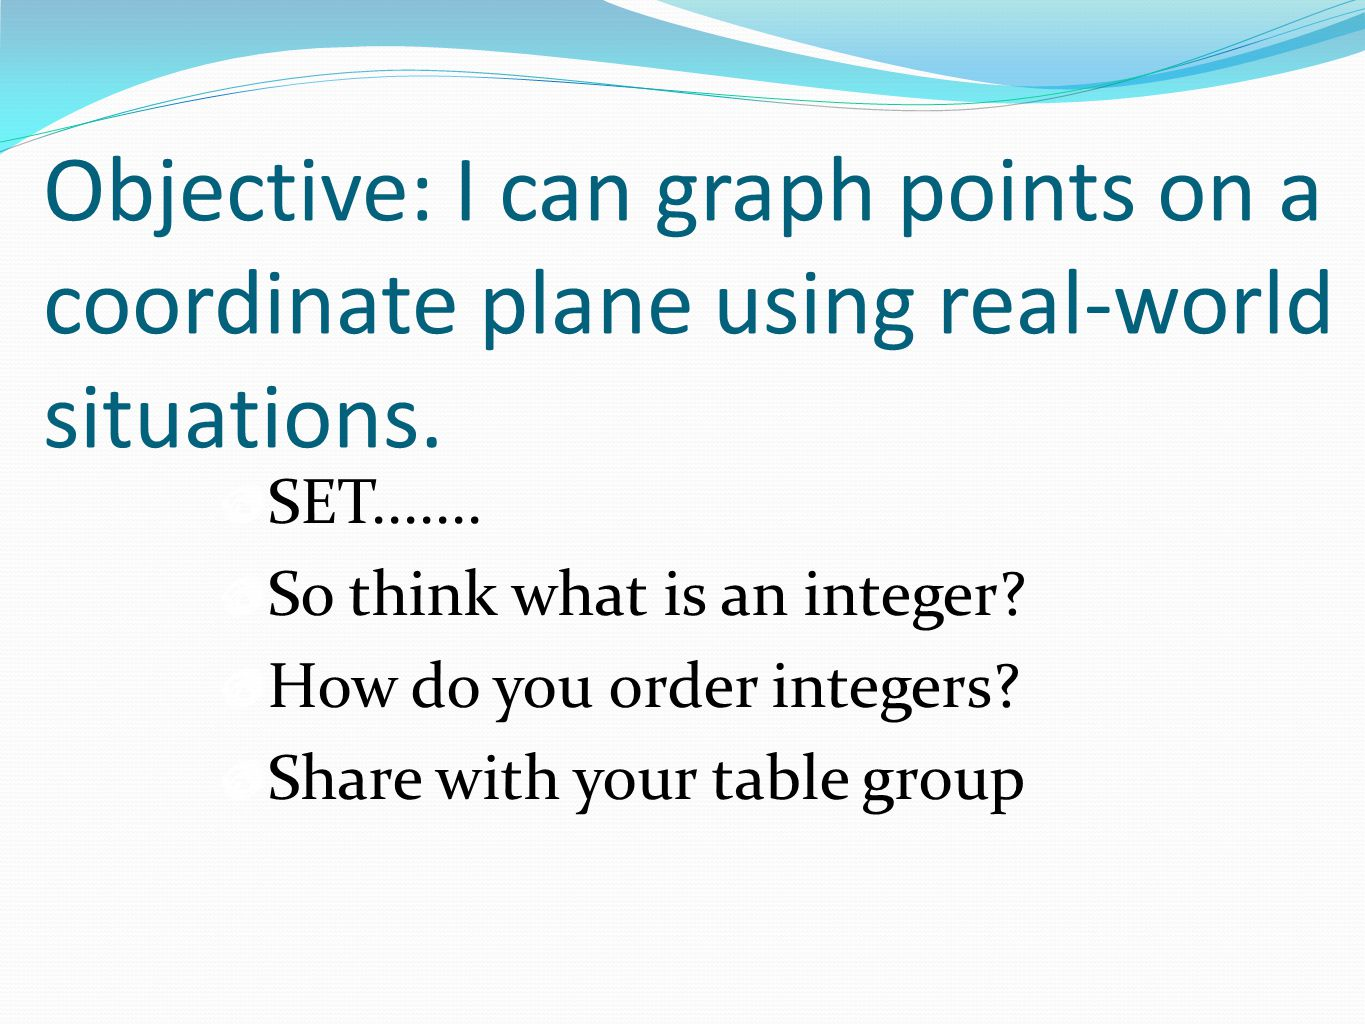 worksheet Graphing Pictures On A Coordinate Plane graph points on the coordinate plane to solve real world and objective i can a using situations